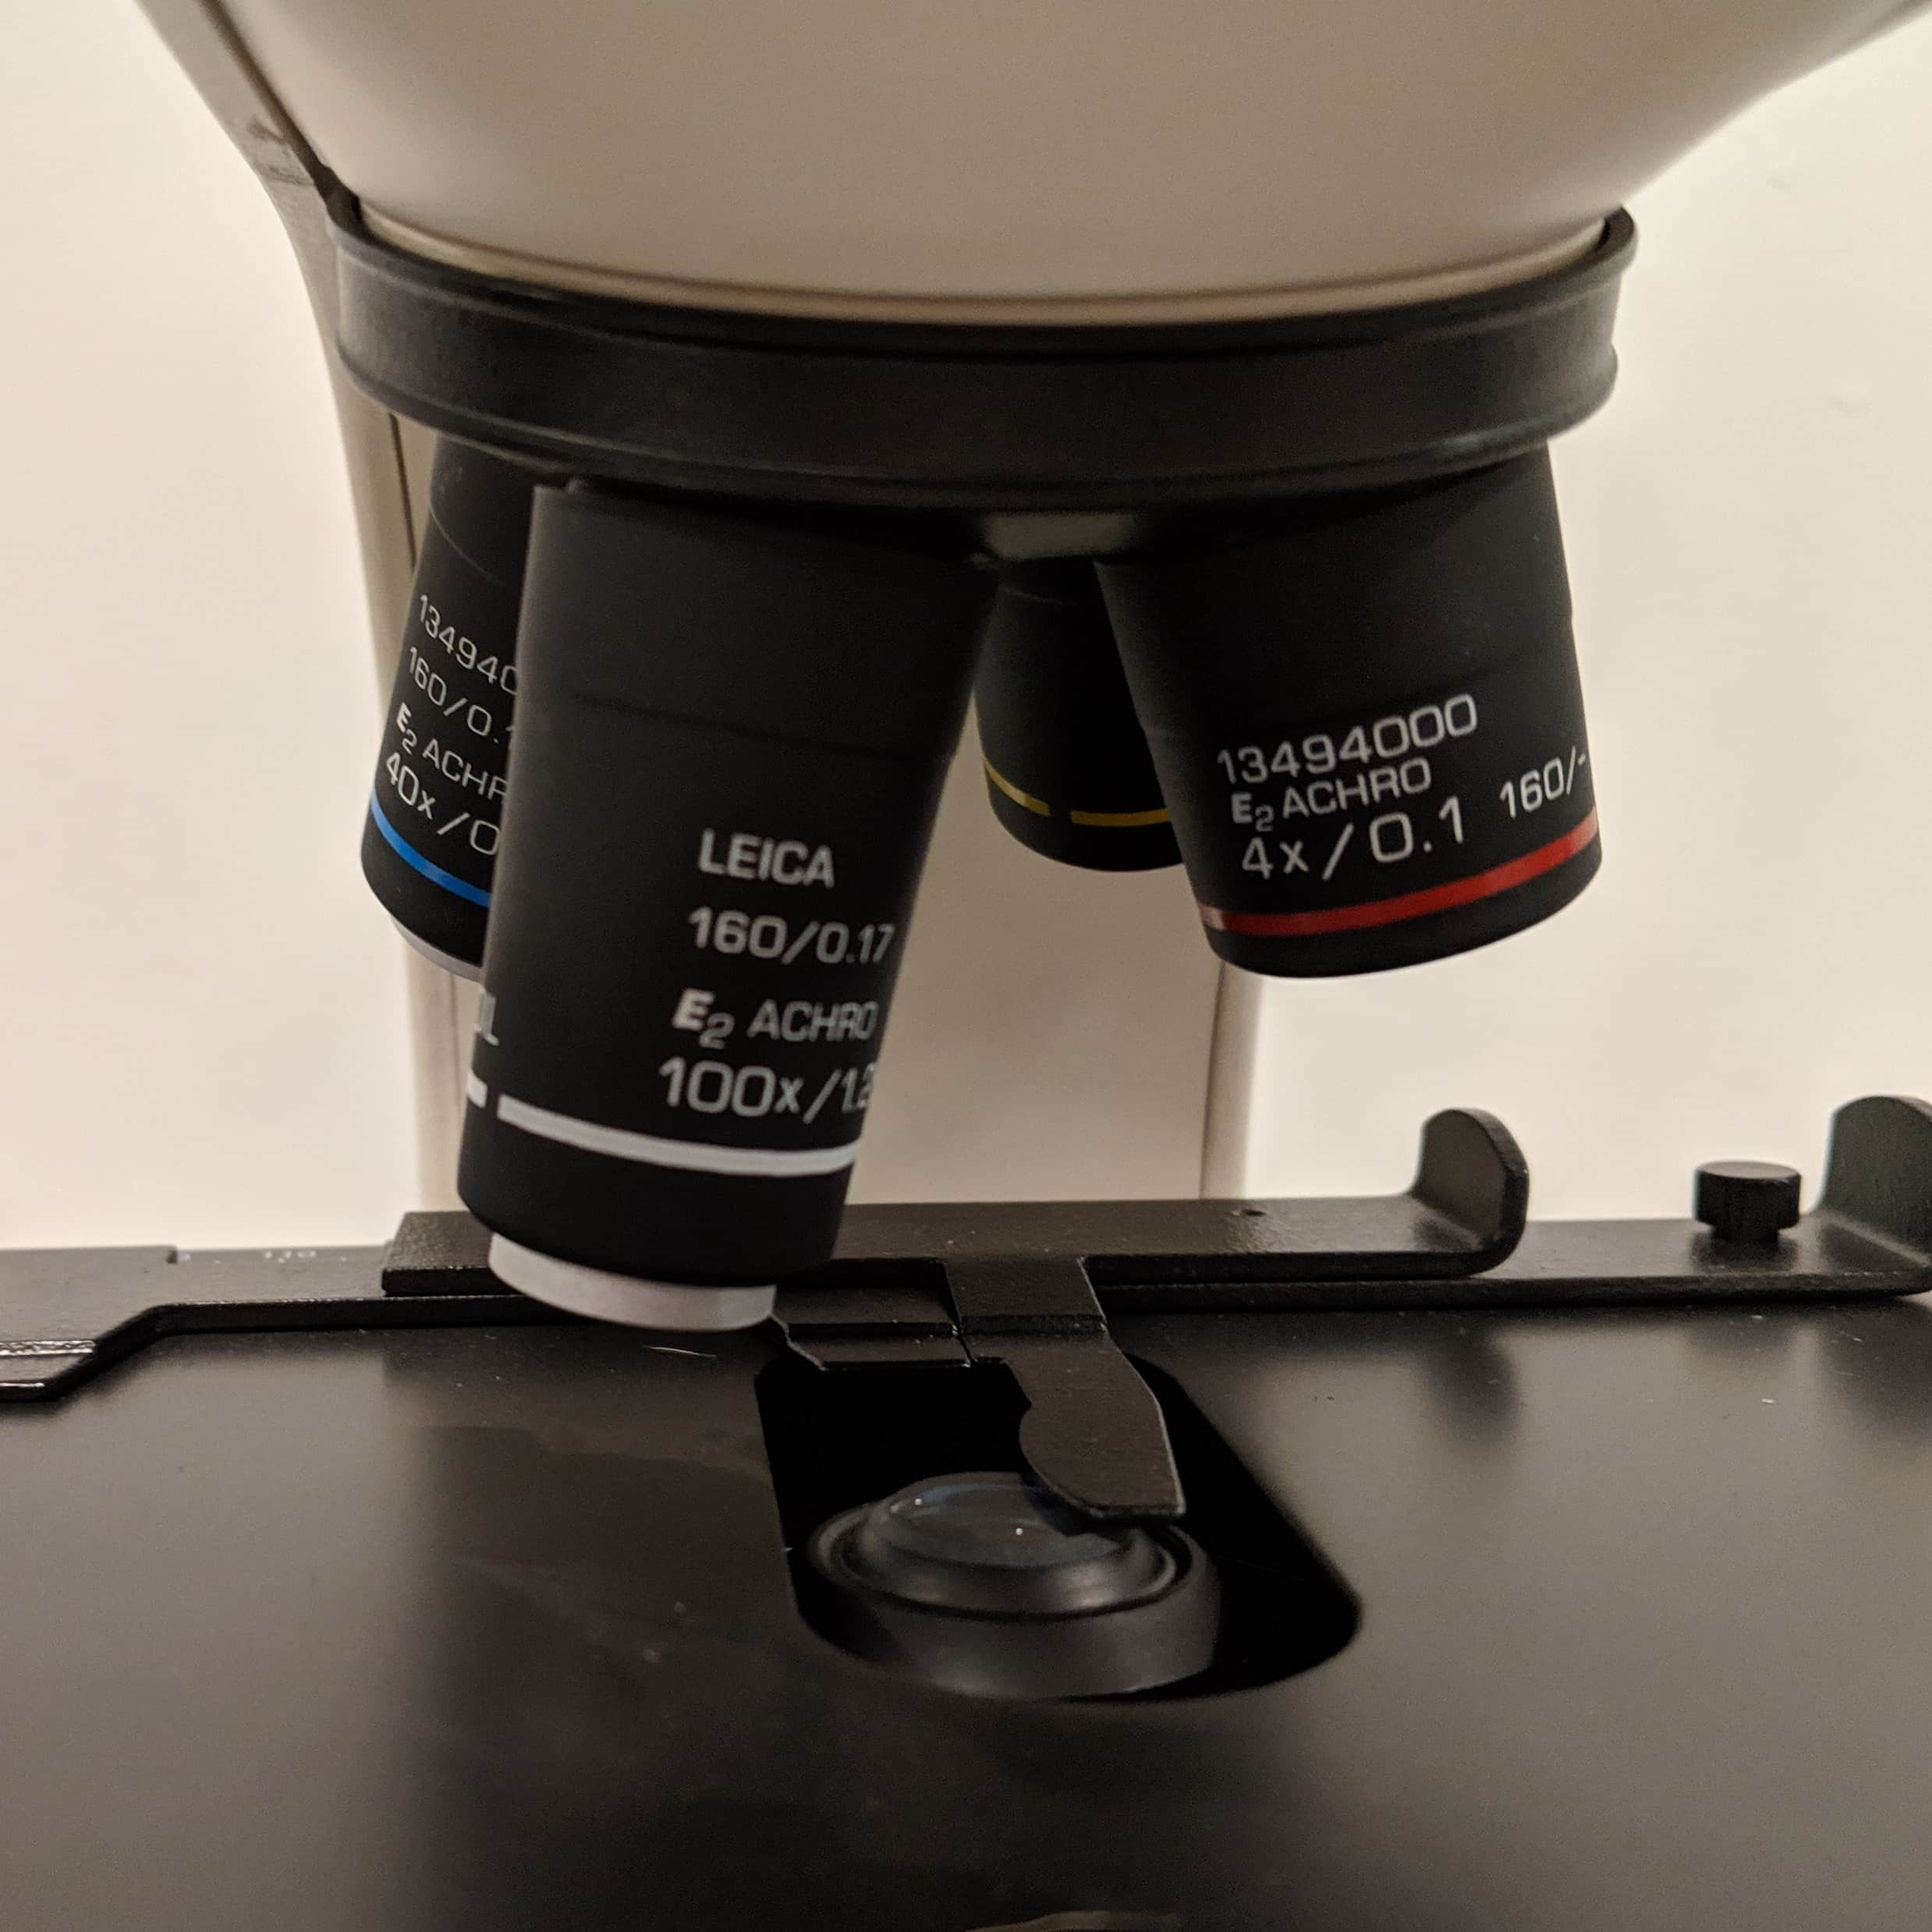 Leica CME Binocular Upright Microscope